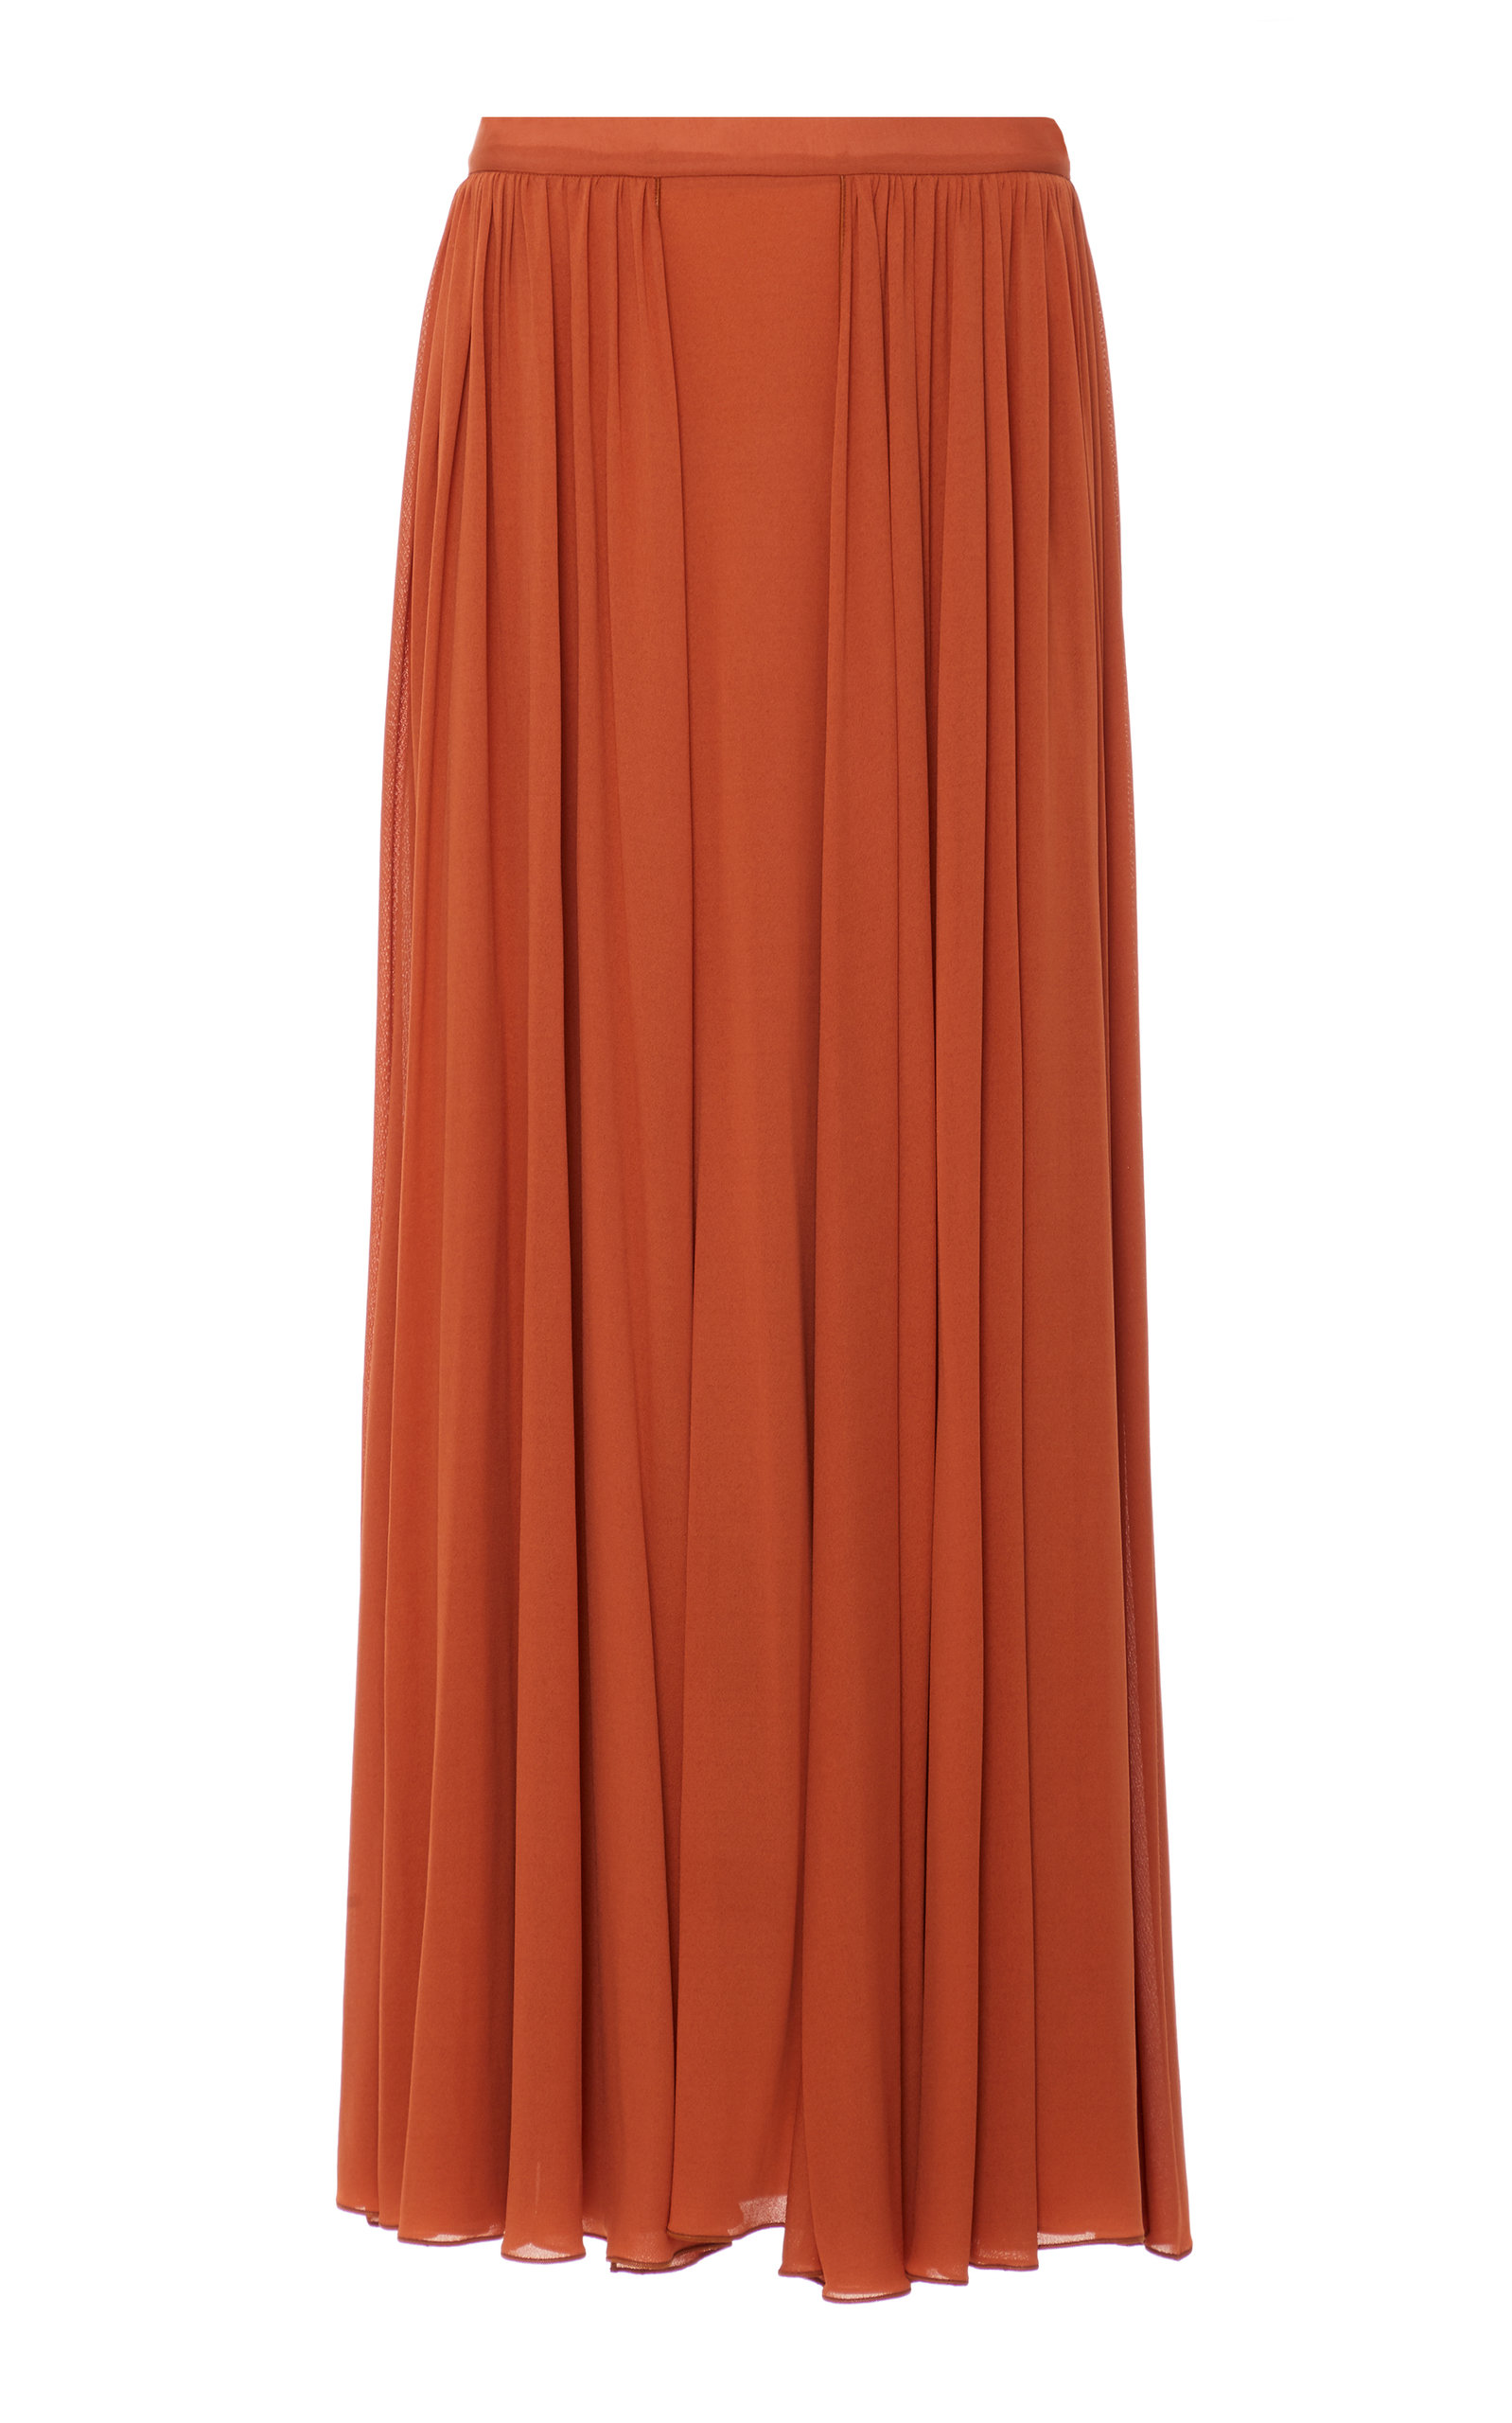 19c8166ba2 Orange Chiffon Maxi Skirt – DACC